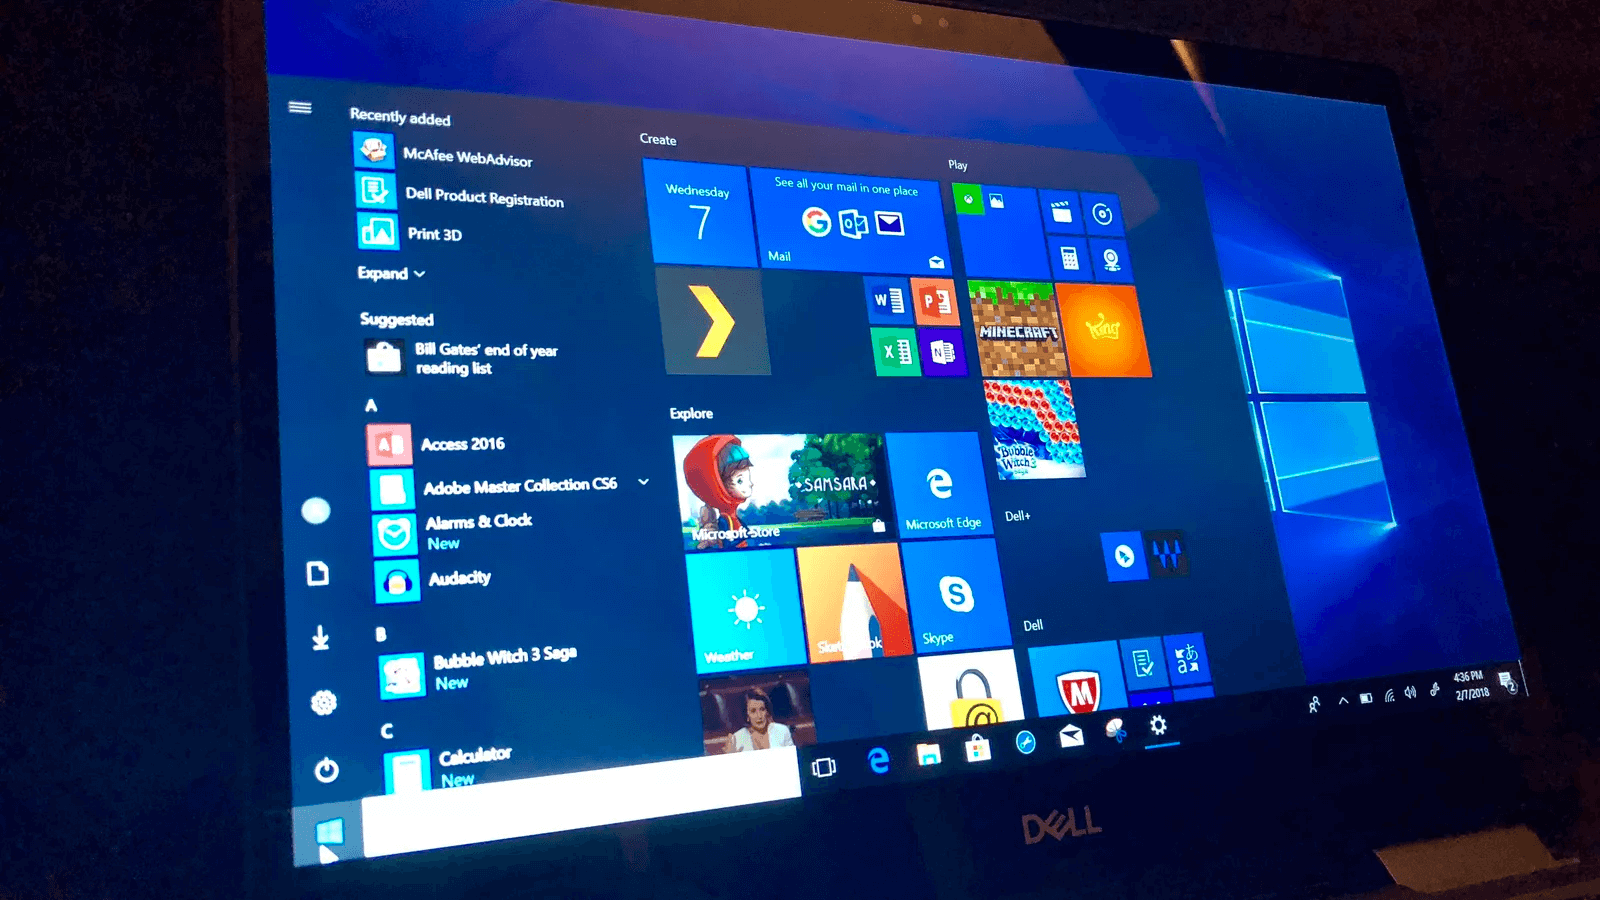 Tools To Customize Your Windows 10